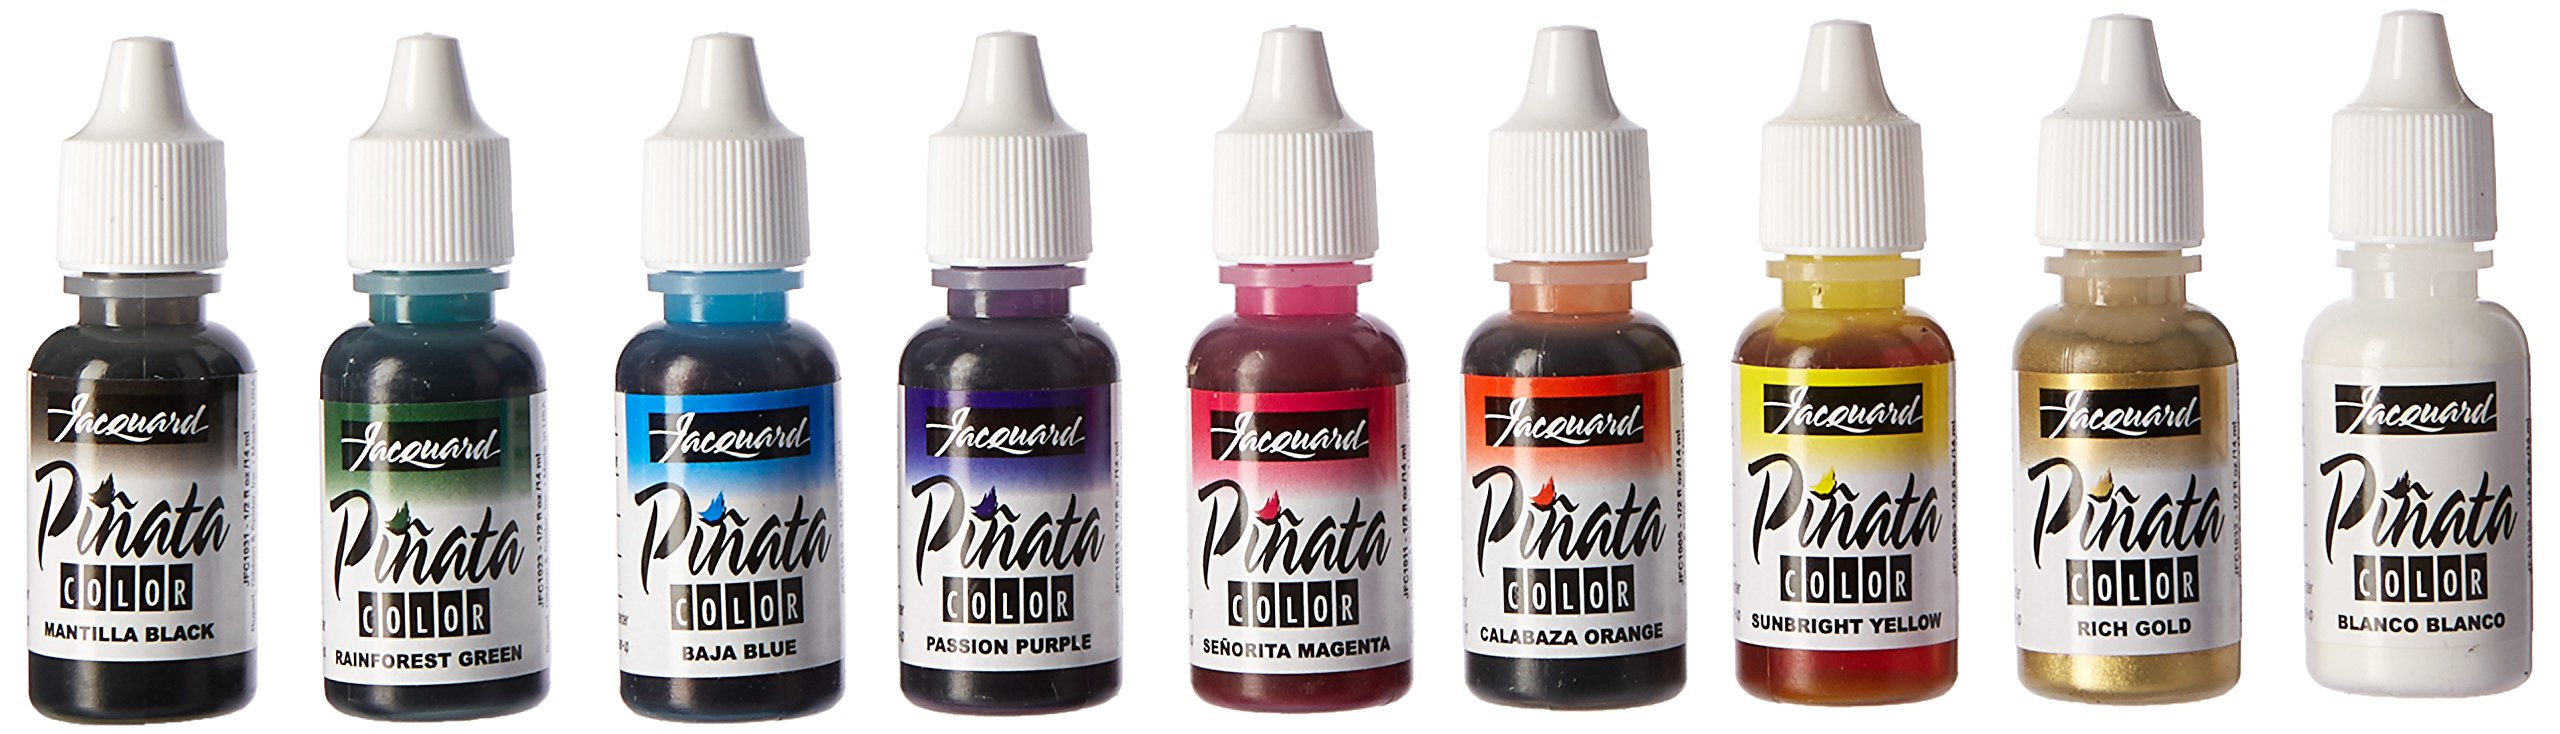 Jacquard Products Piñata Color Exciter Pack Ink, 9